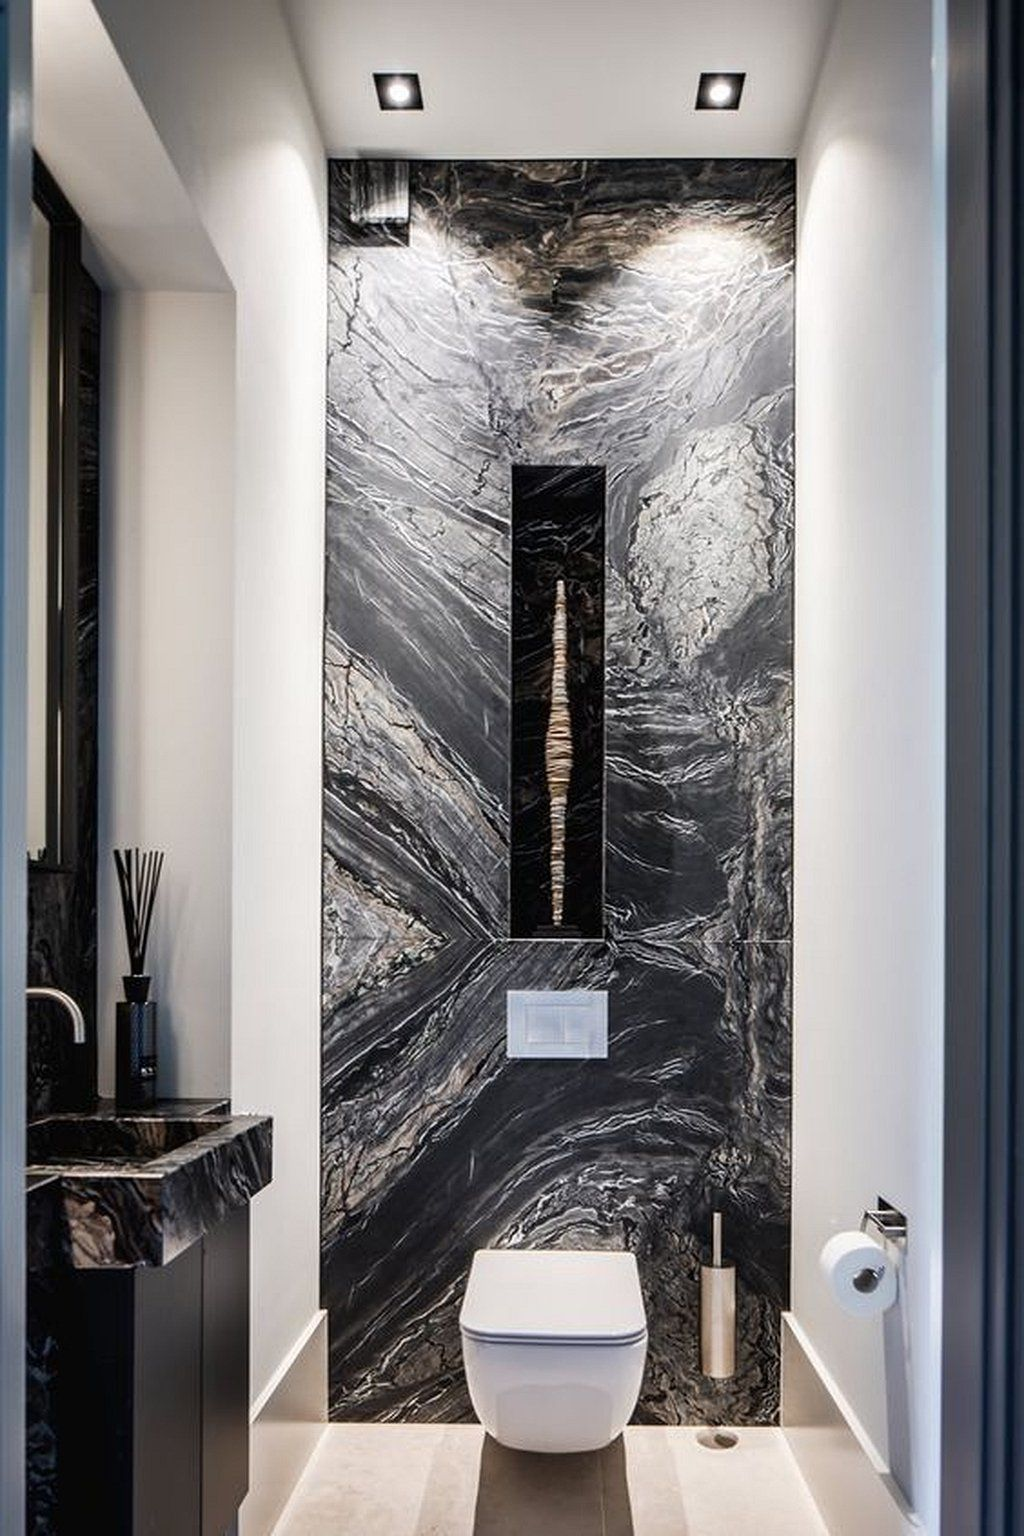 Bathroom Inspiration Modern Small Ideas Https Www Mobmasker Com Bathroom Ins Bathroom Inspiration Modern Small Bathroom Remodel Designs Black Marble Bathroom